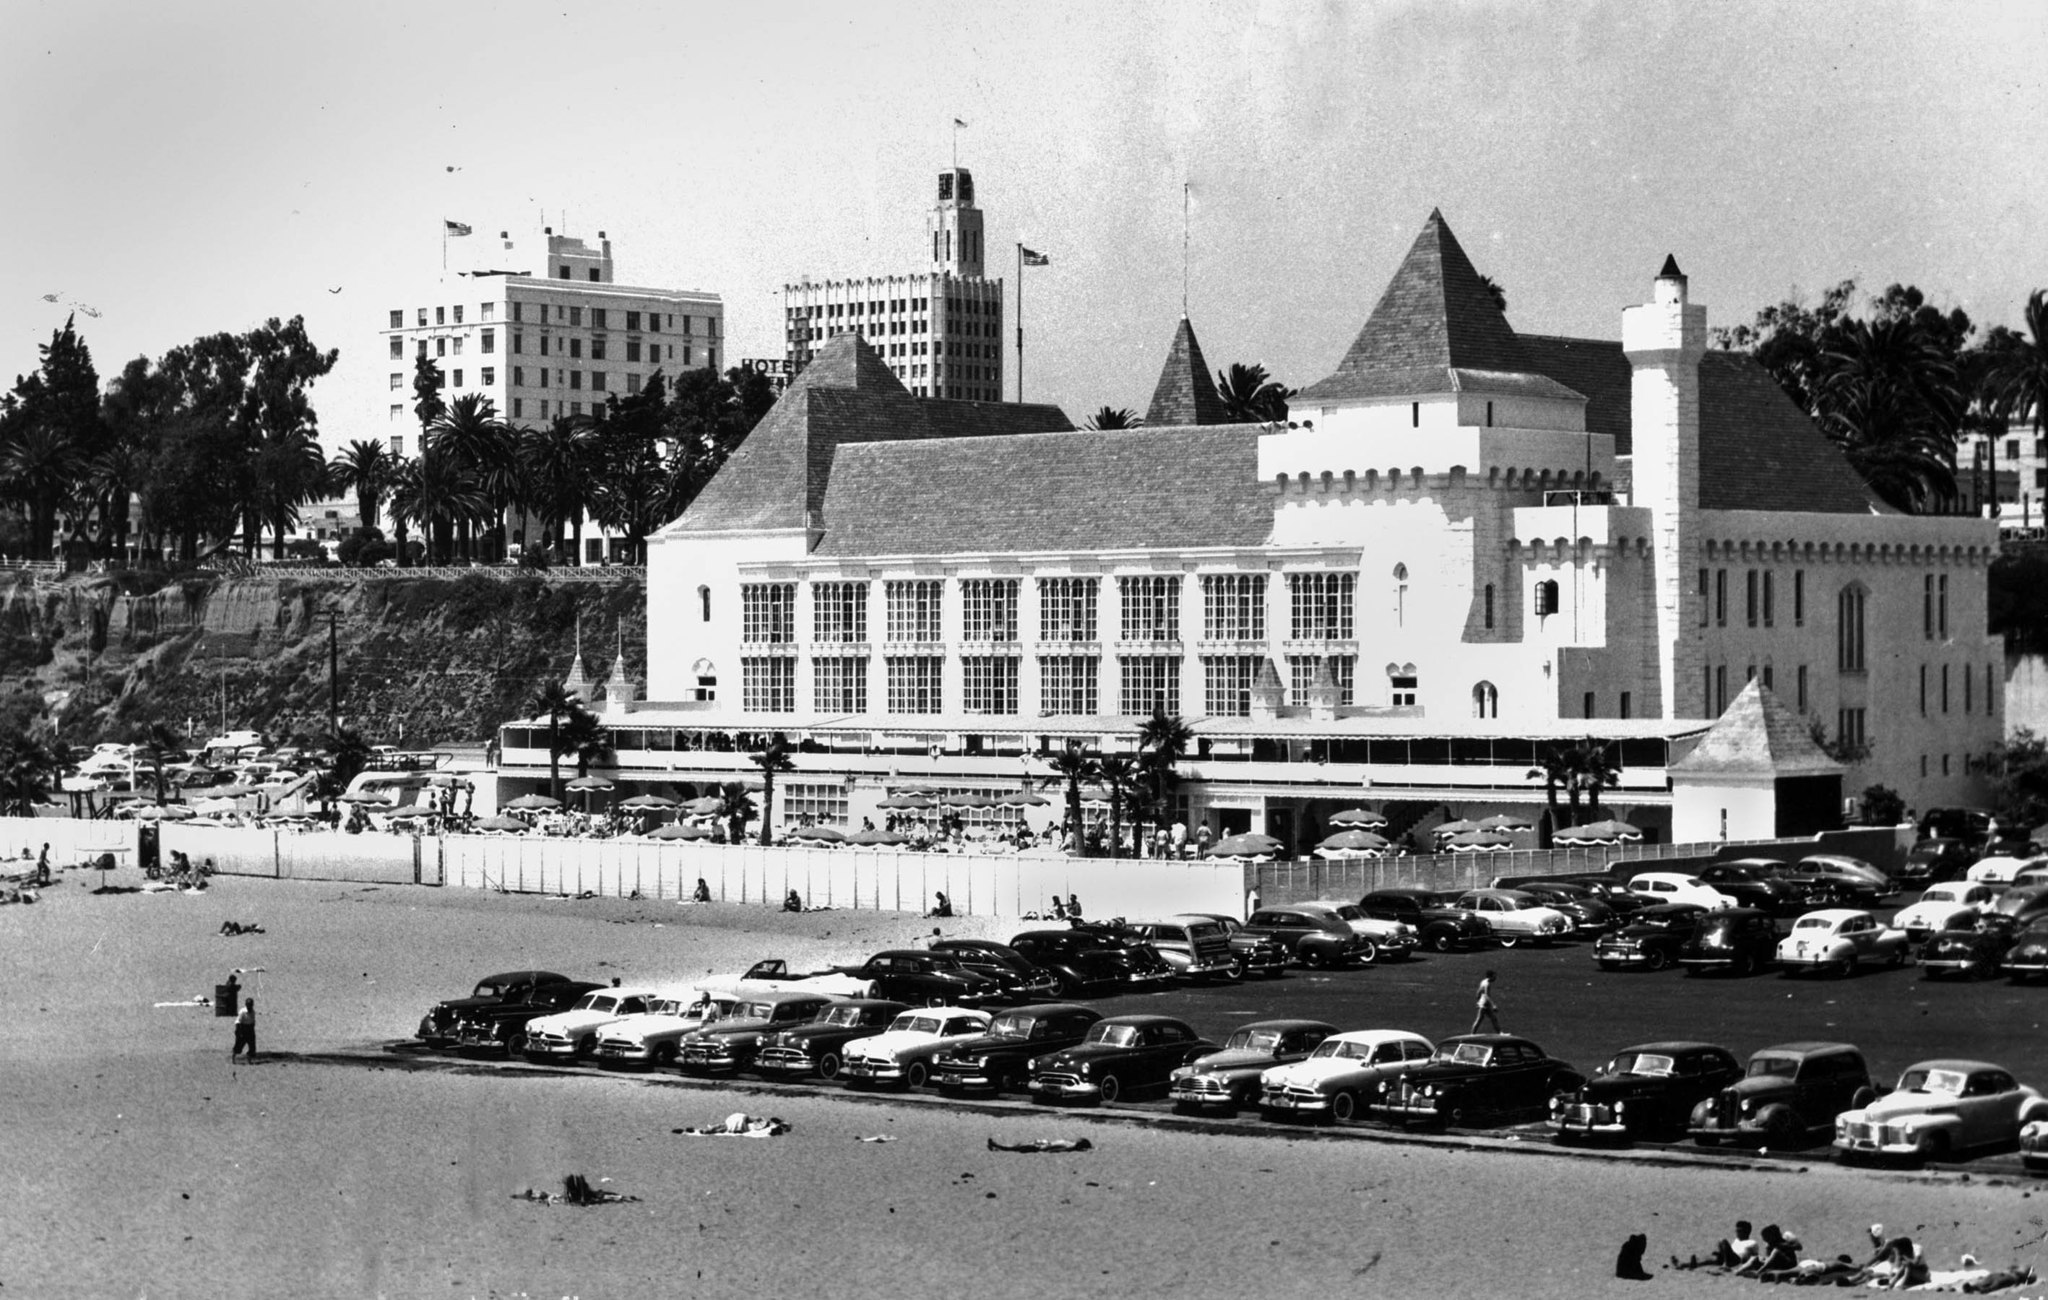 1951 photo of the Deauville Club at Santa Monica. Photo published in the April 22, 1951 Los Angeles